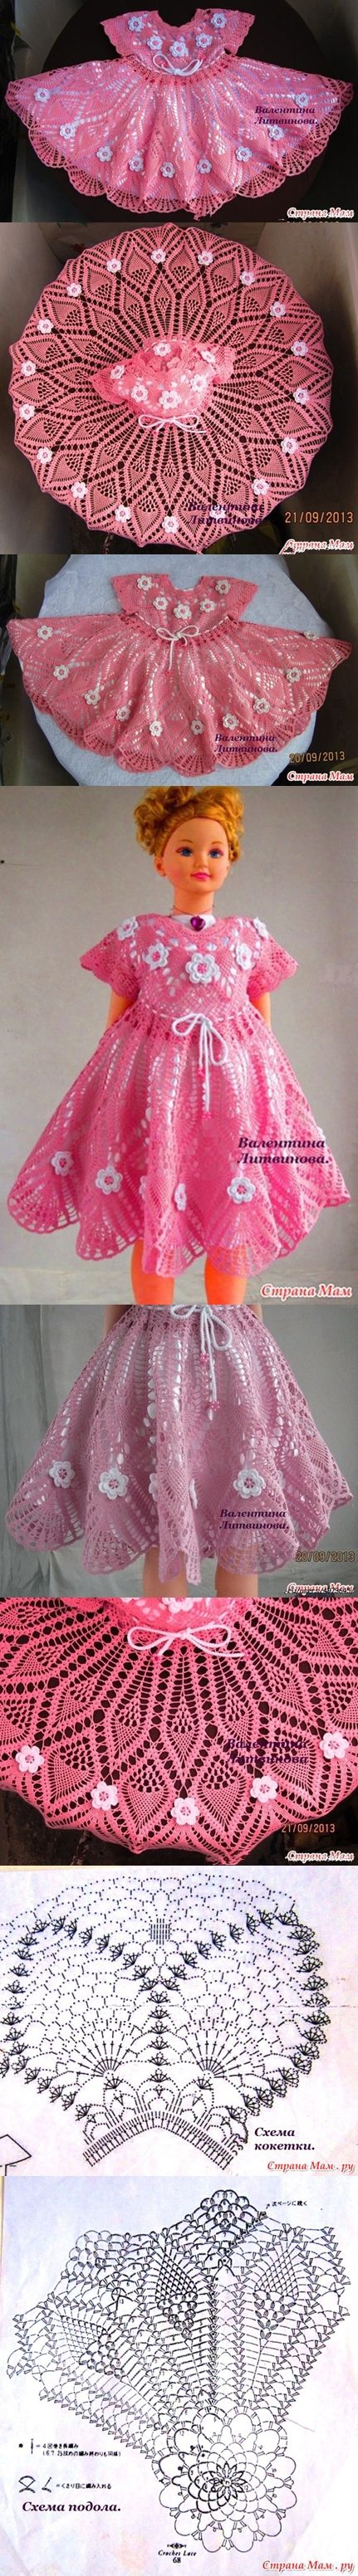 crochet princess dress pattern